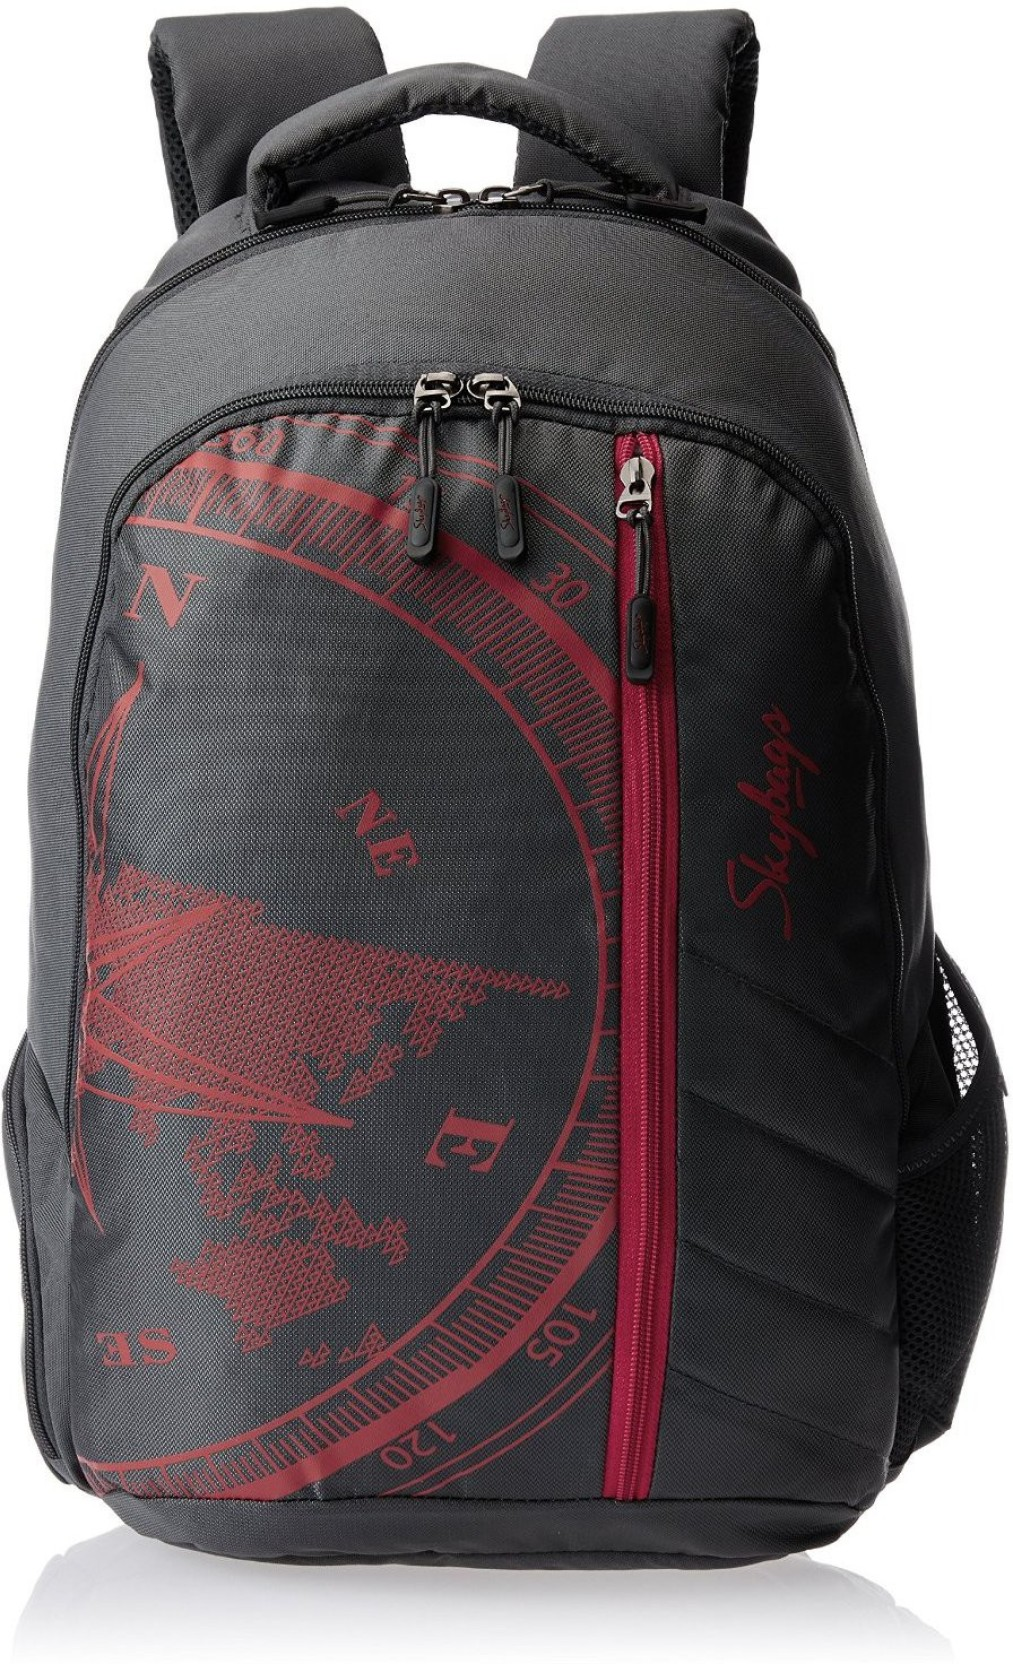 Laptop Backpack Walmart- Fenix Toulouse Handball 11e6a476dcf7b